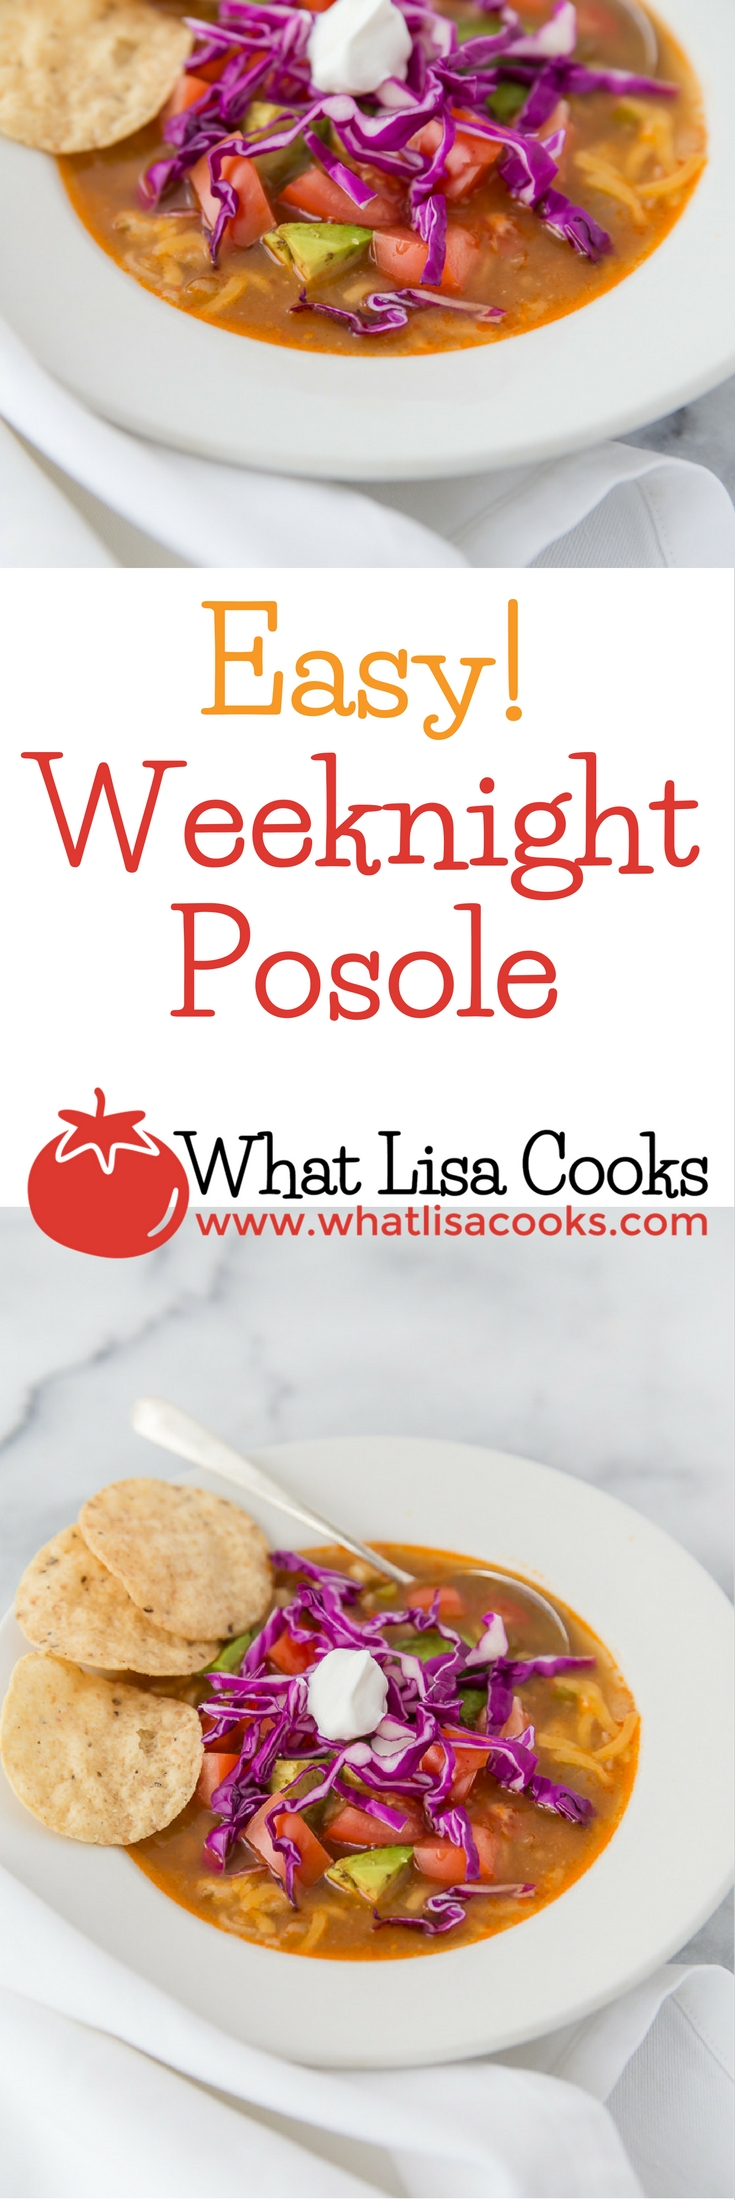 Easy Weeknight Posole Recipe | WhatLisaCooks.com